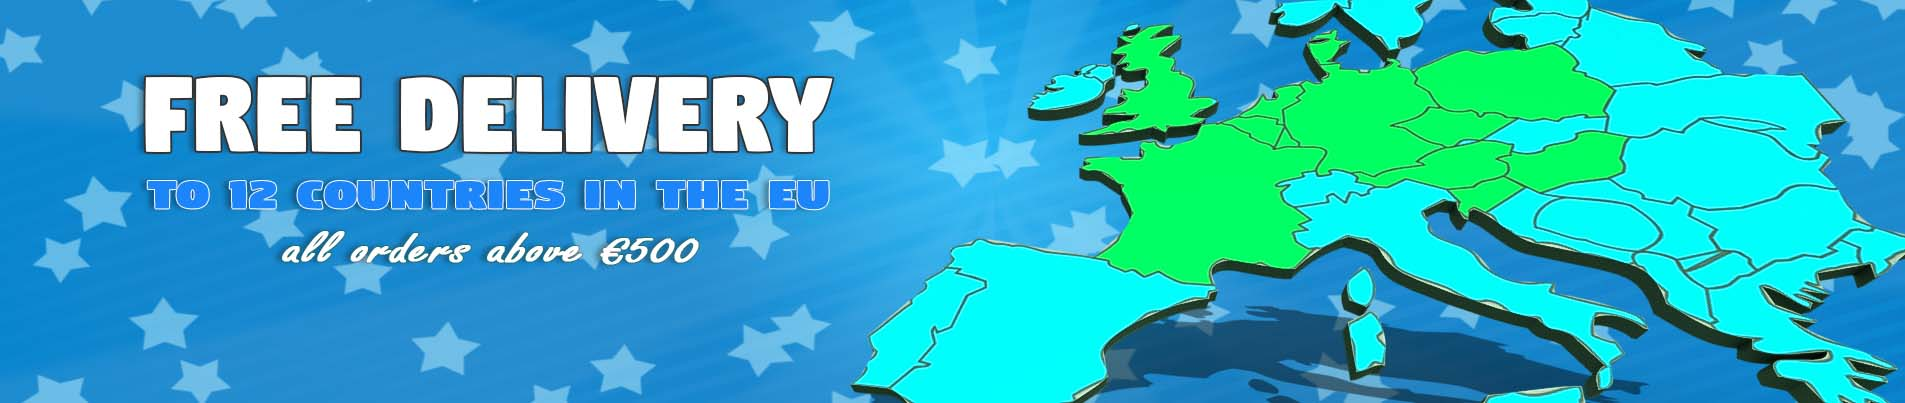 Disney Wholesale - Free Delivery to 12 Countries in Europe.